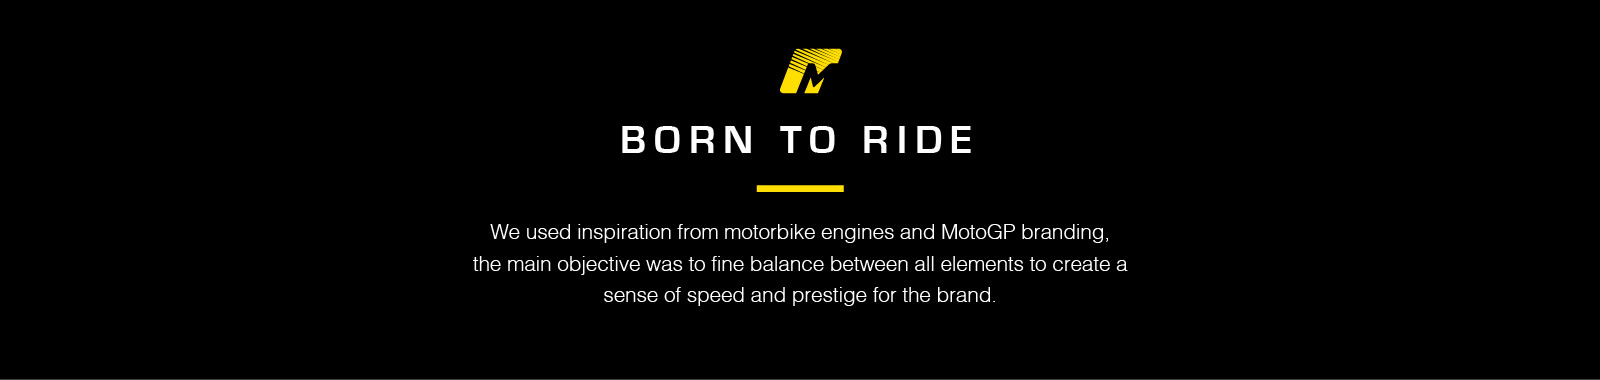 Moto.it born to ride description